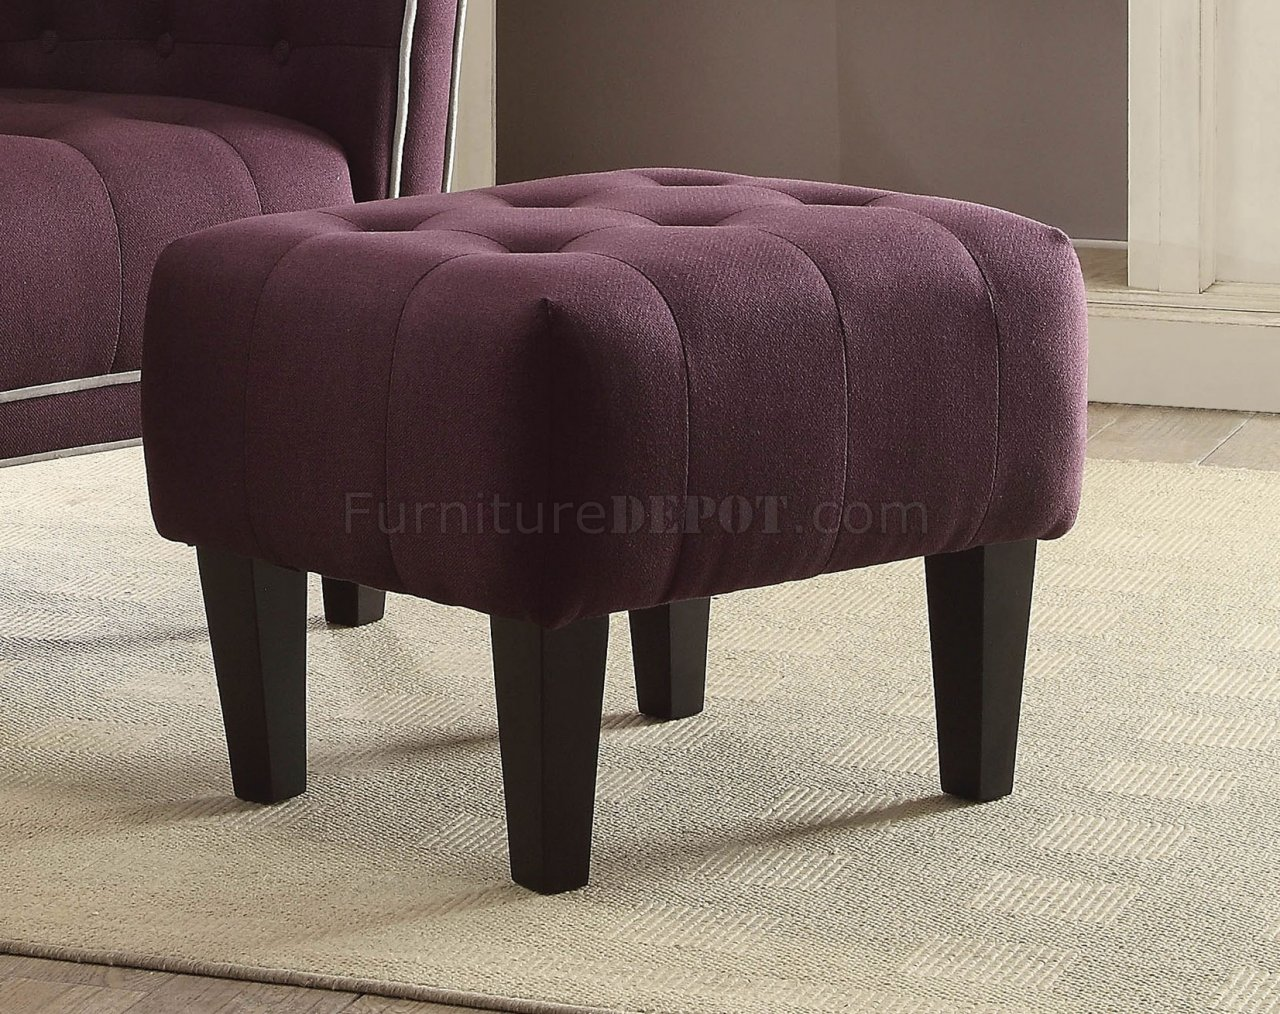 purple tufted sofa set best bed brands uk ophelia of accent chair & ottoman 59630 in by acme